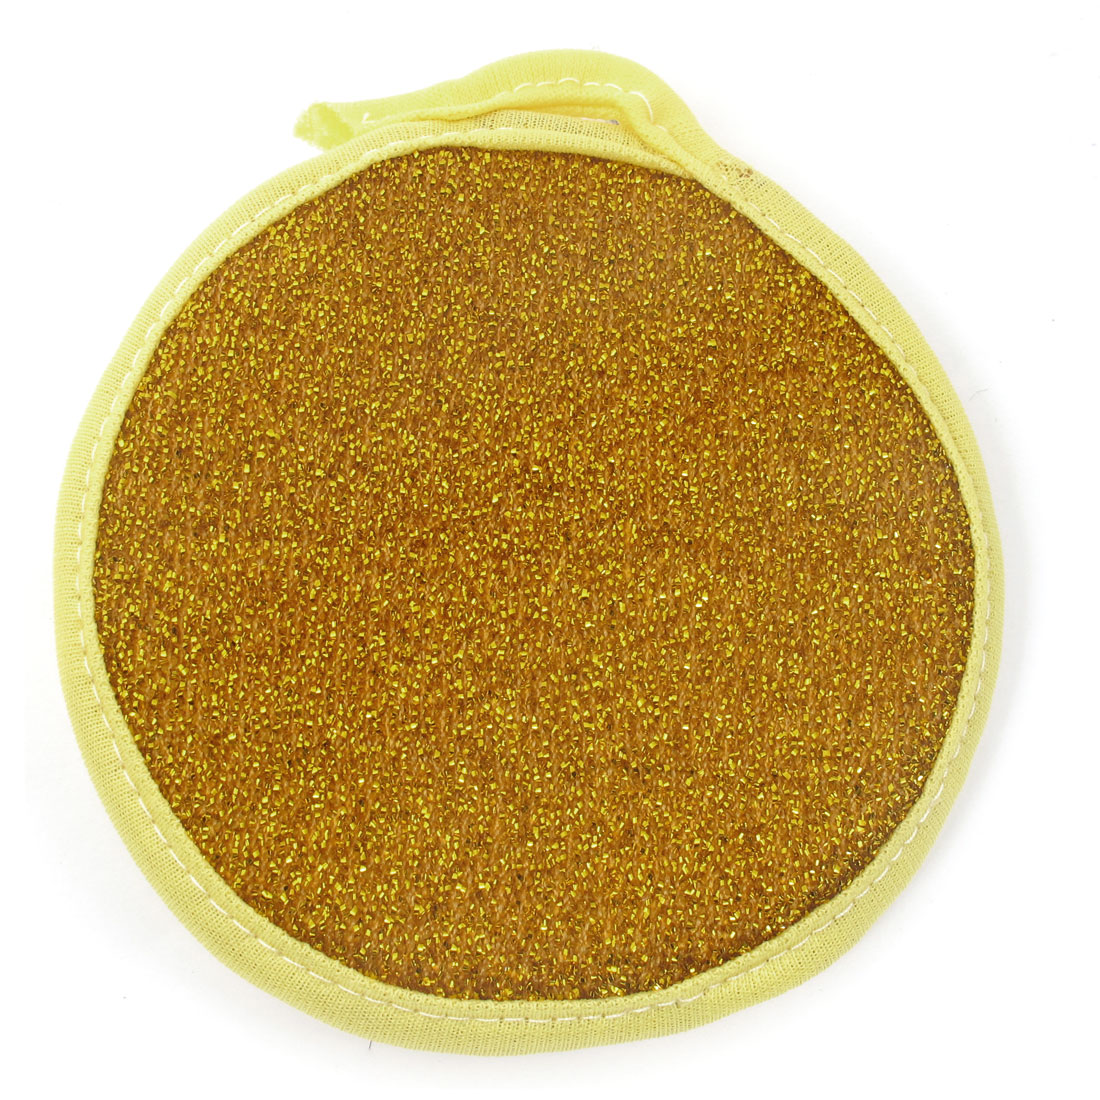 Yellow Gold Tone Bowl Dish Scrubber Pad Sponge for Kitchen